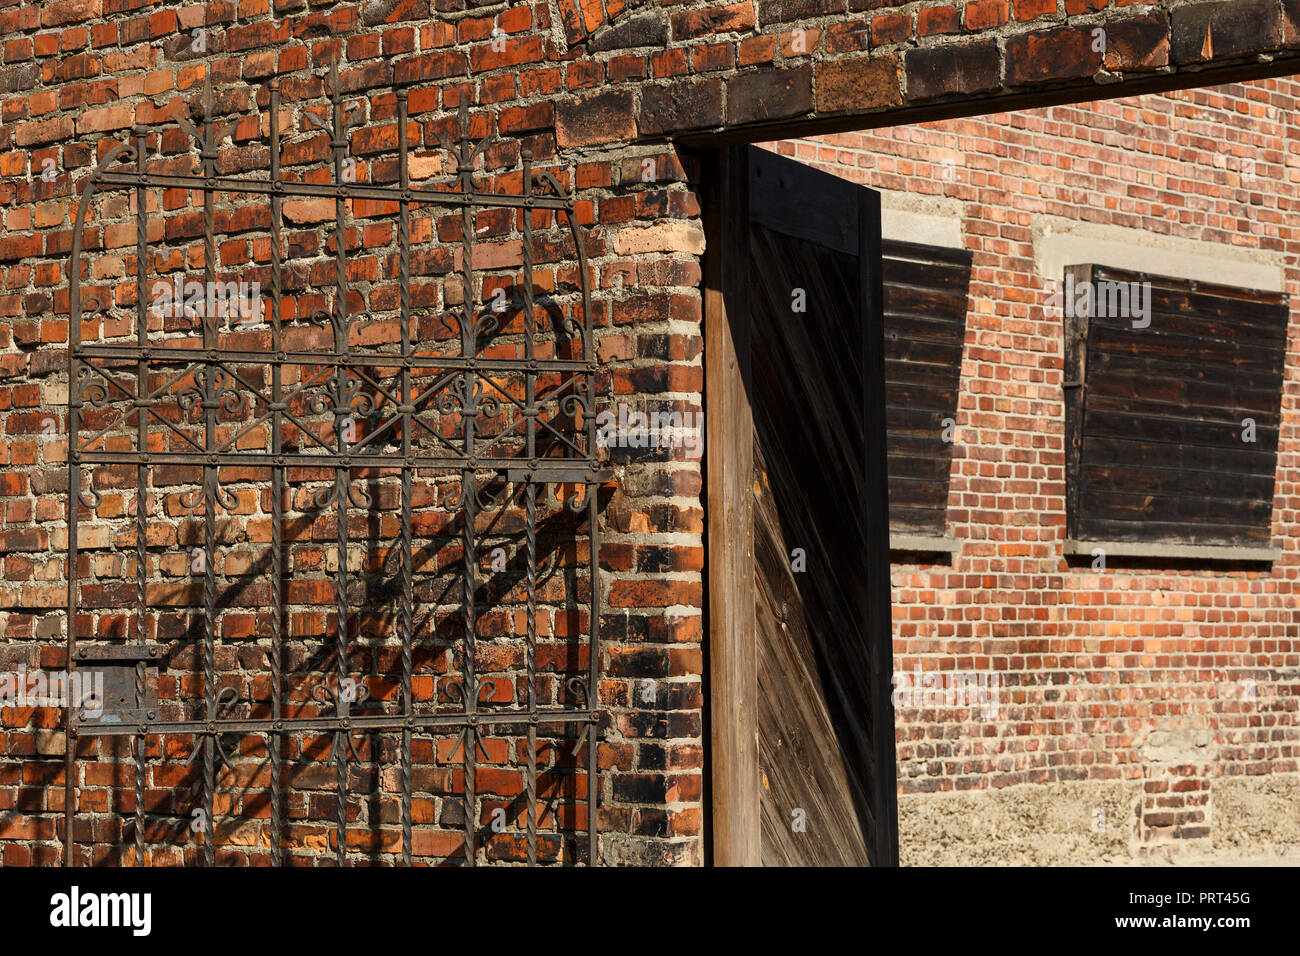 Oswiecim, Poland - August 22, 2018: Place of executions in former German Nazi Concentration and Extermination Camp Auschwitz-Birkenau. - Stock Image